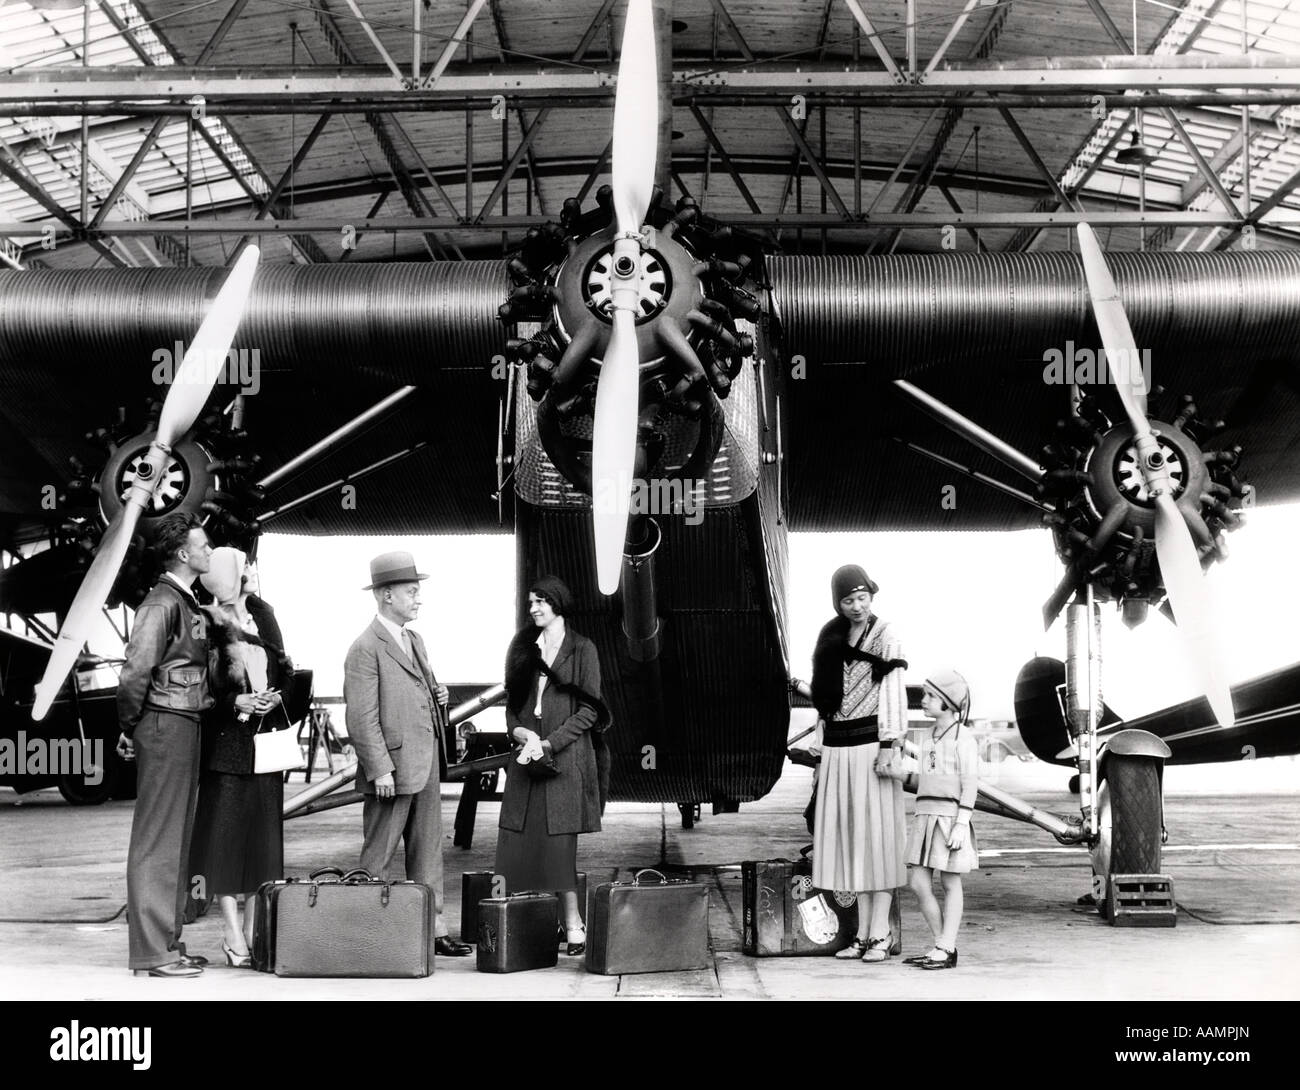 1920s 1930s GROUP OF PASSENGERS WAITING IN FRONT OF FORD TRI-MOTOR AIRPLANE Stock Photo